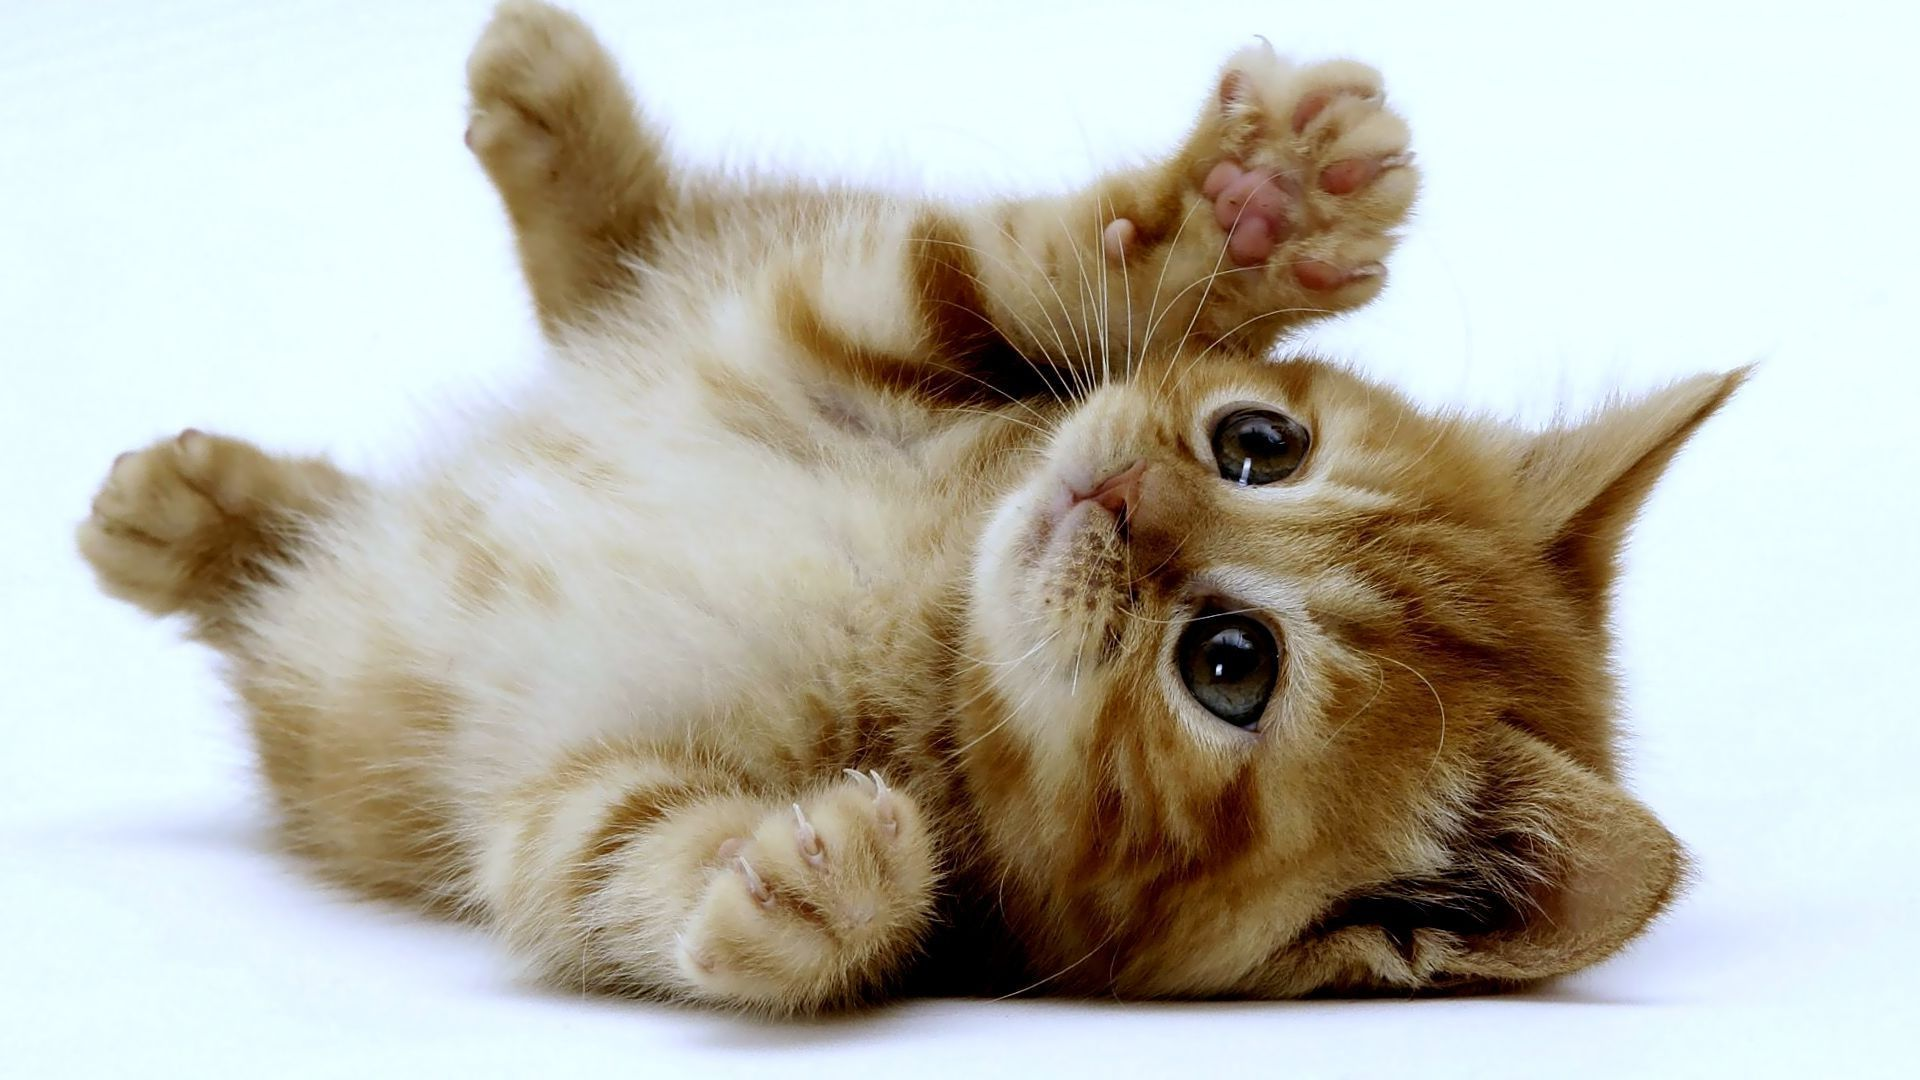 Cute Kittens4 Jpg 1920 1080 Kittens Cutest Kitten Wallpaper Cuddle Pictures